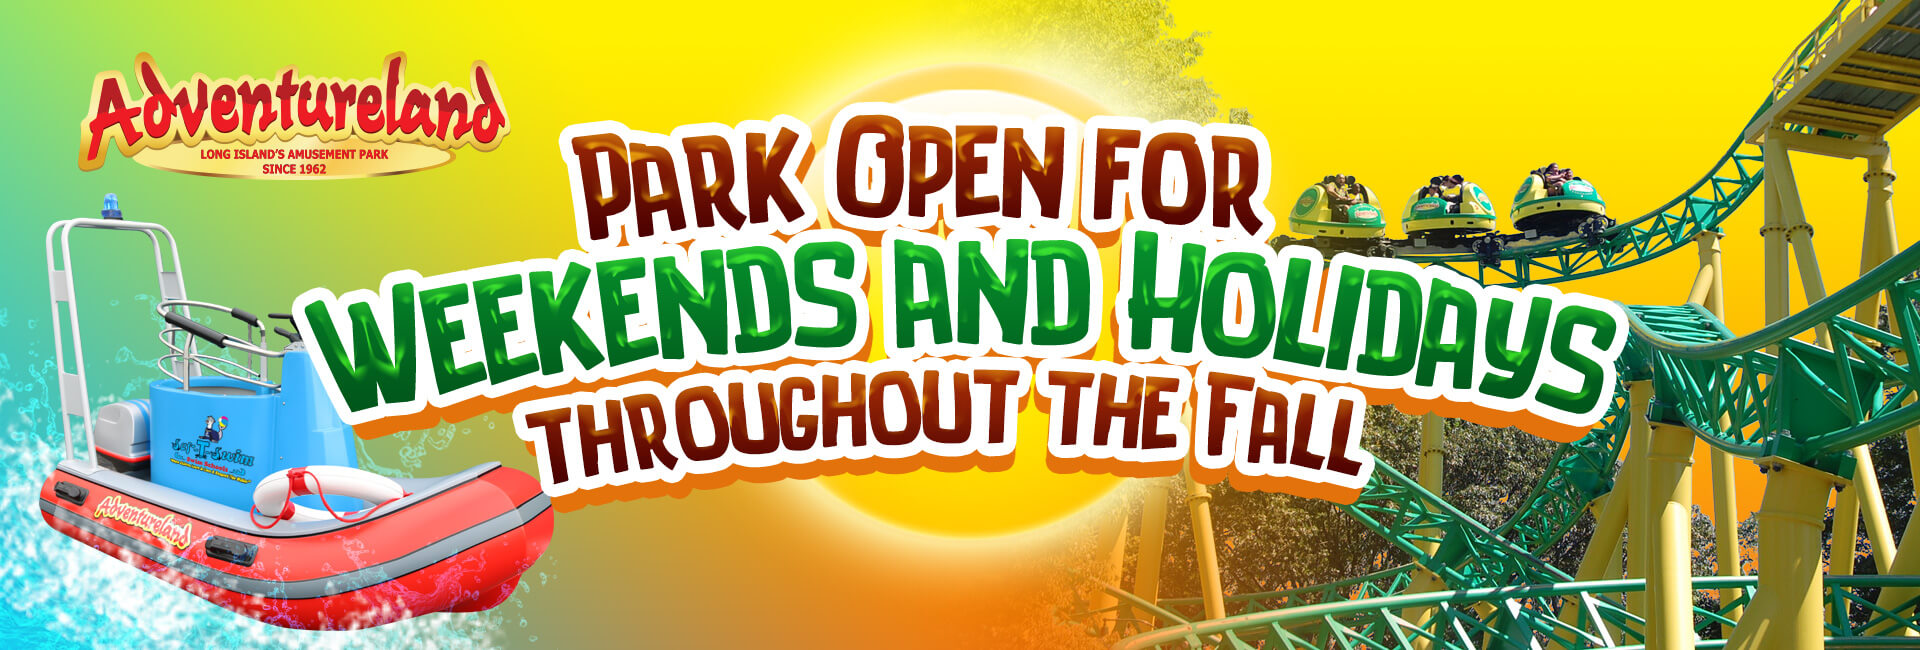 Park Open Weekends and Holidays